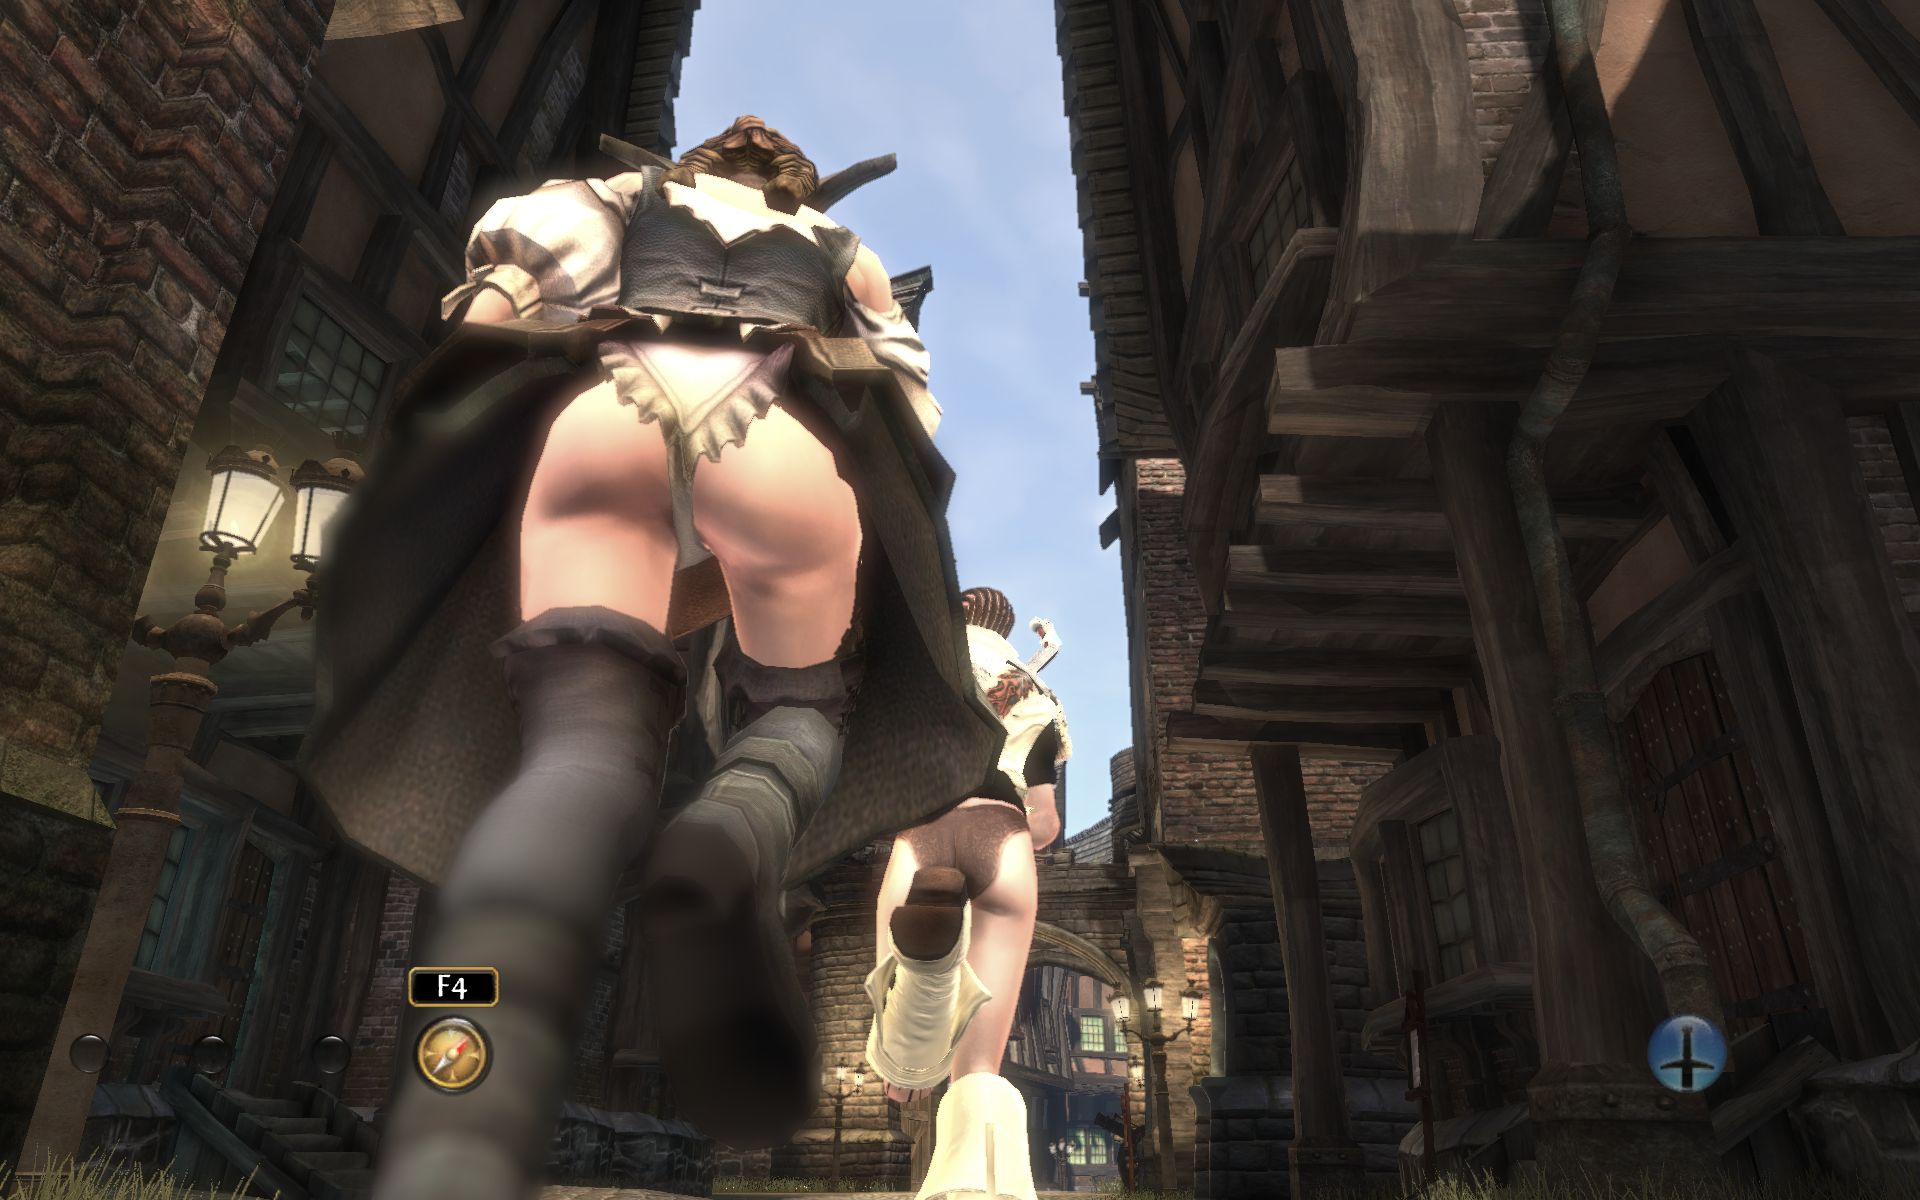 How to get nude in fable anime picture